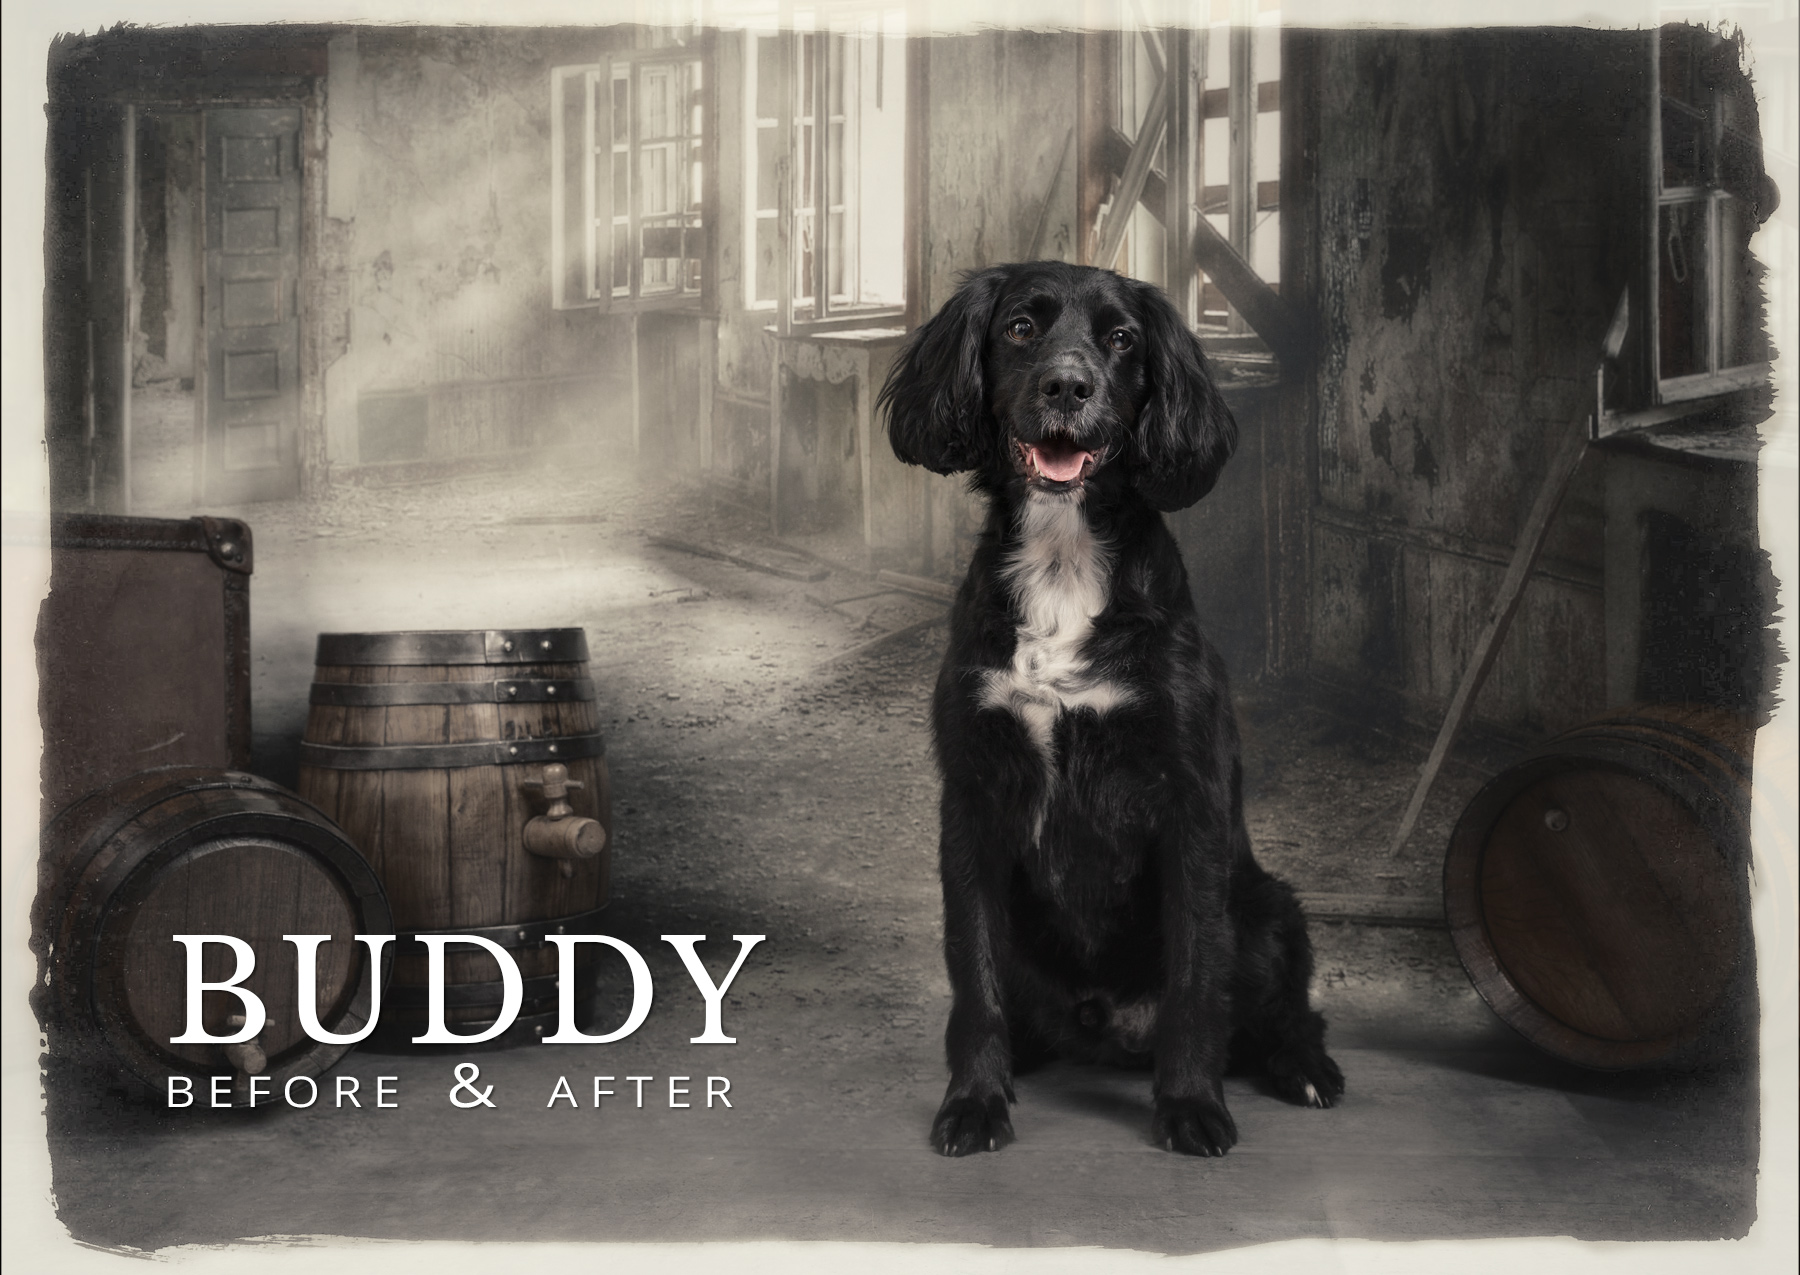 Buddy before and after